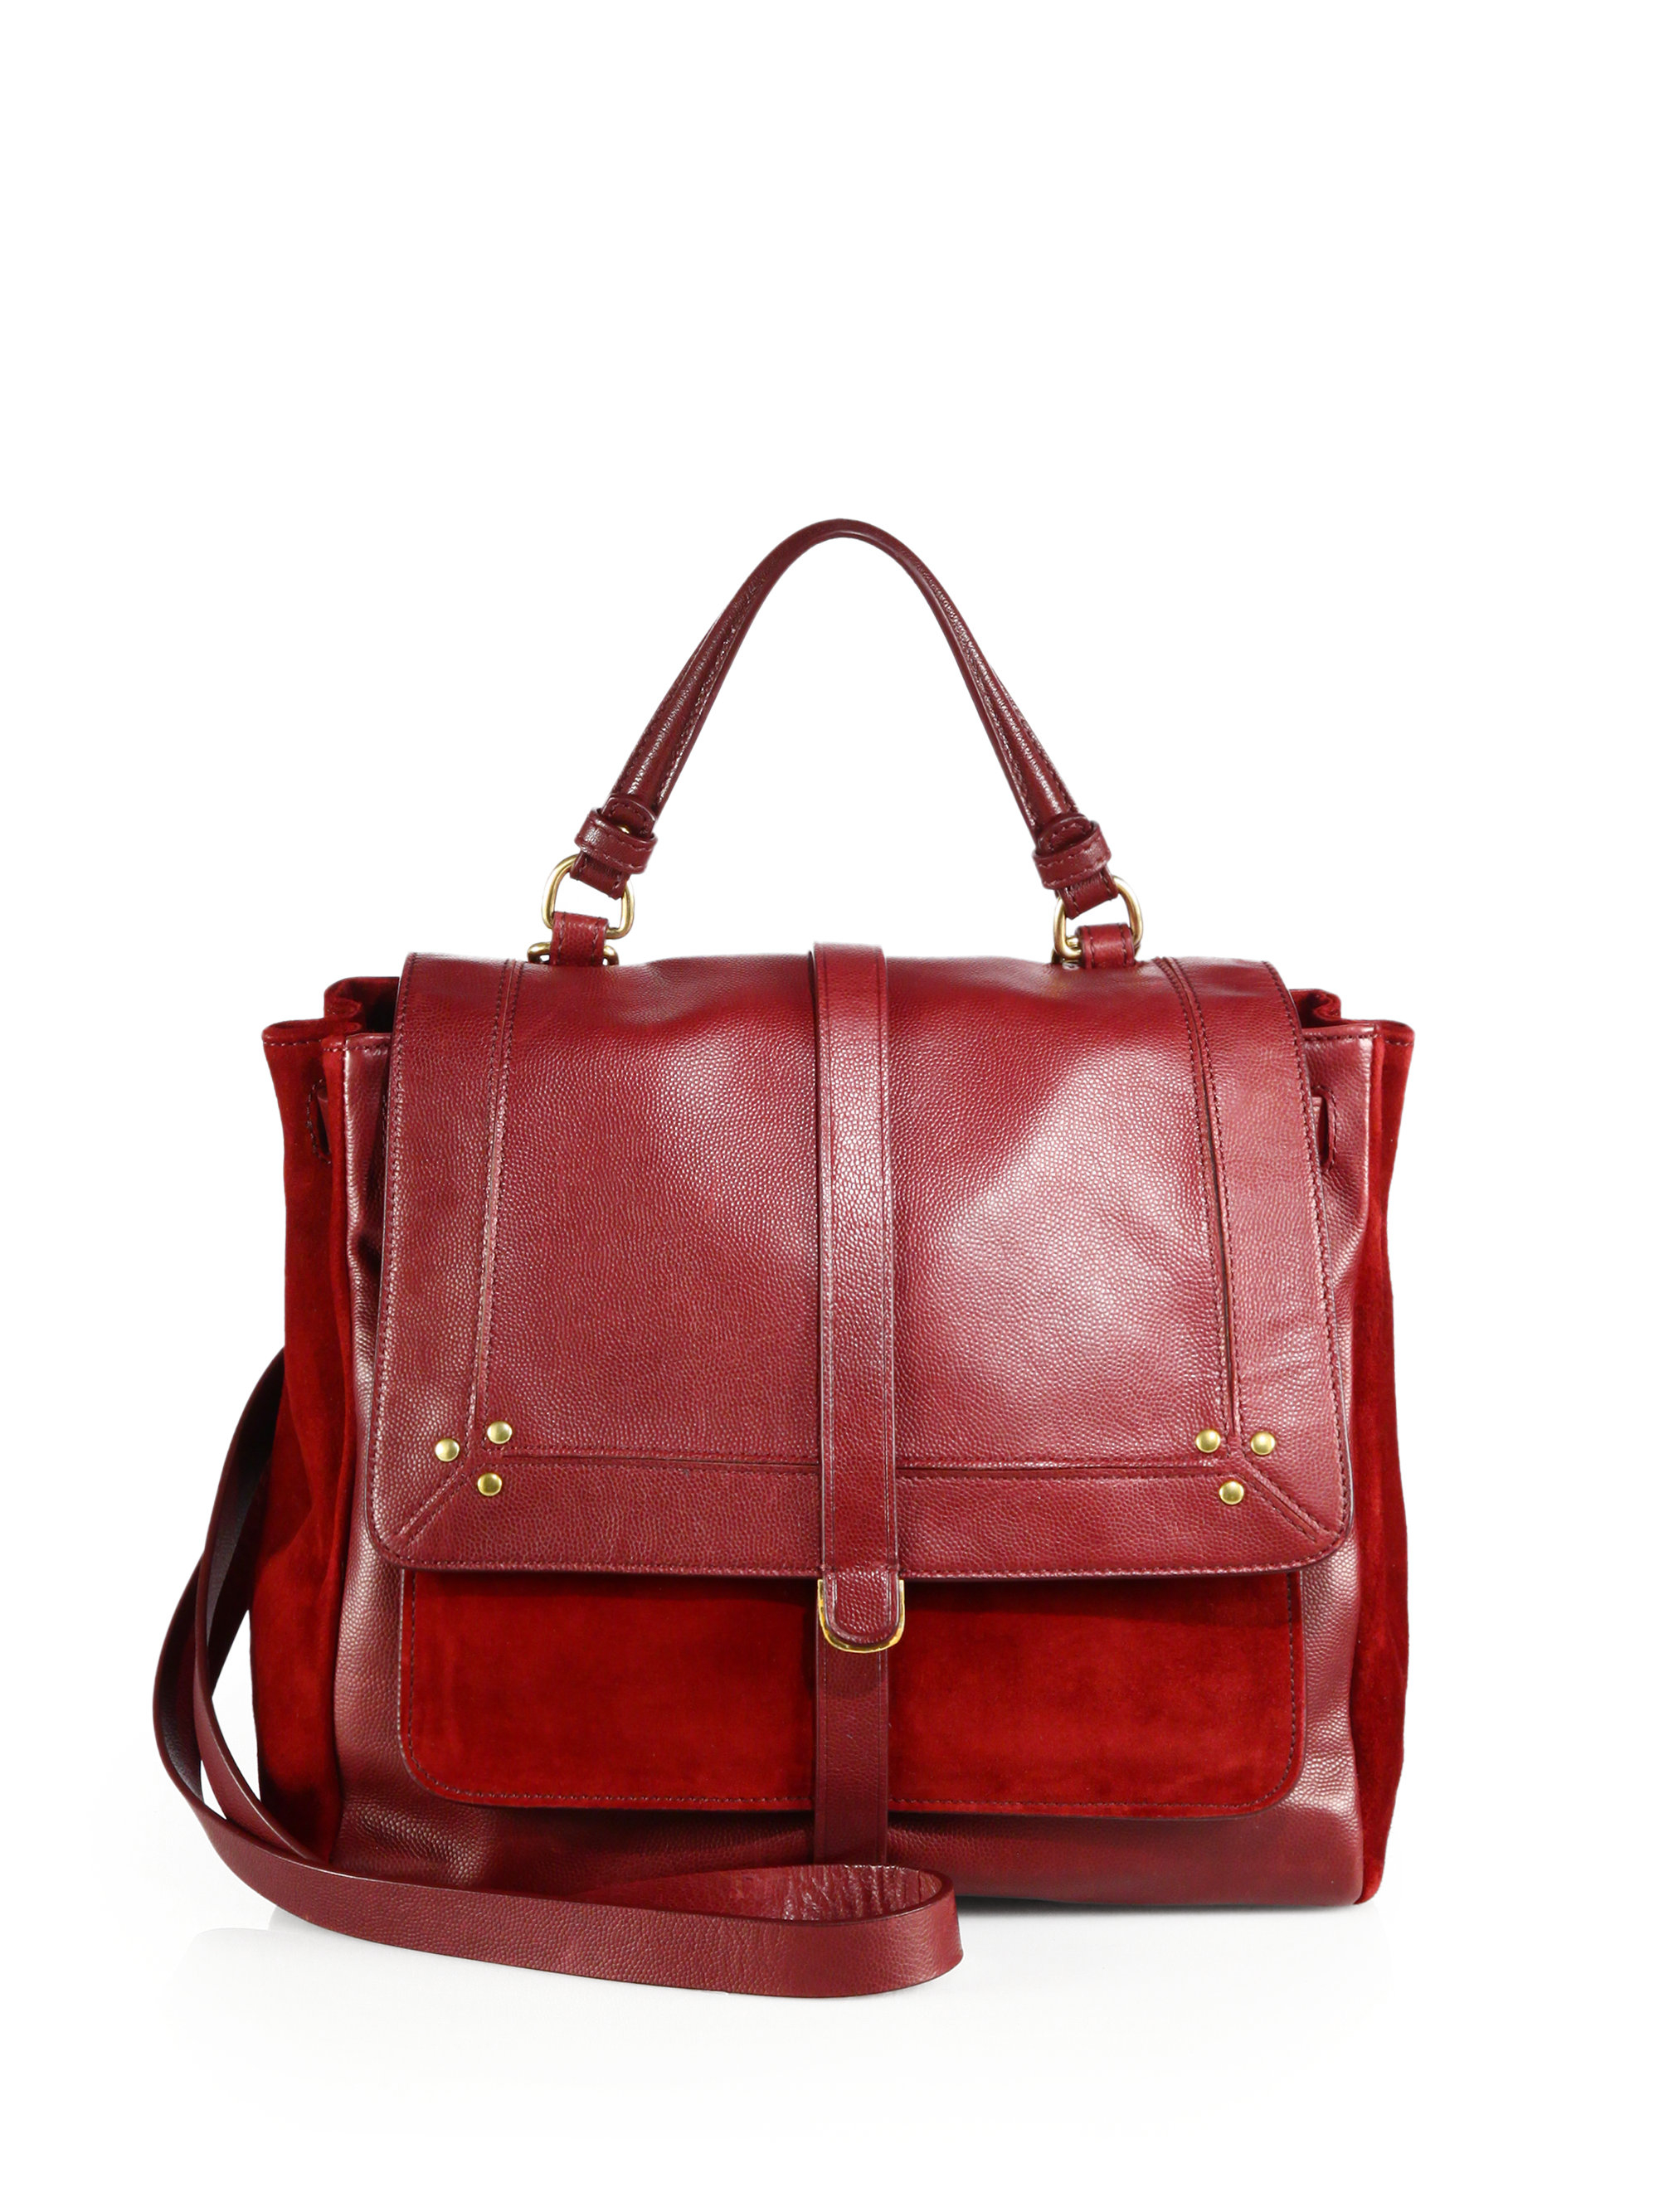 Image Result For Armani Handbags